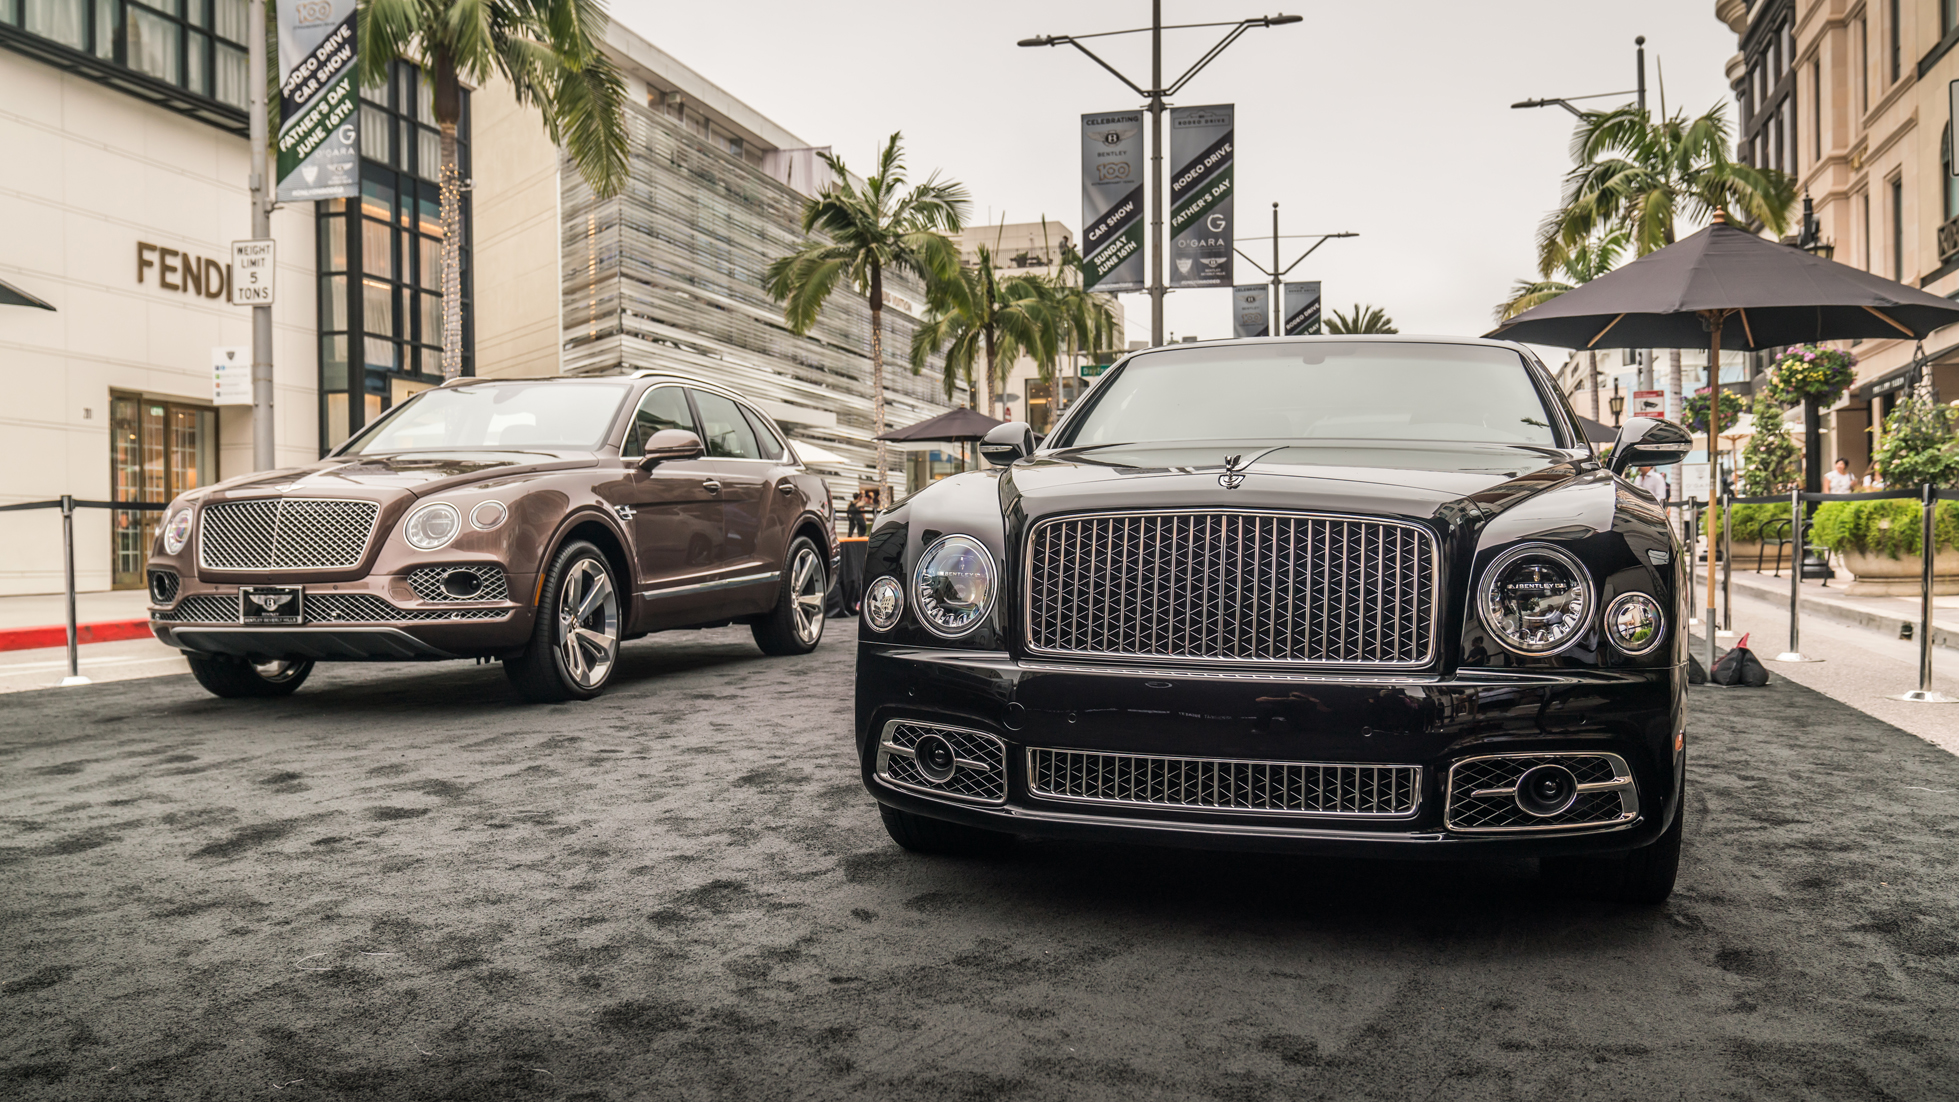 RODEO DRIVE CONCOURS - A BENTLEY BEVERLY HILLS EXPERIENCE